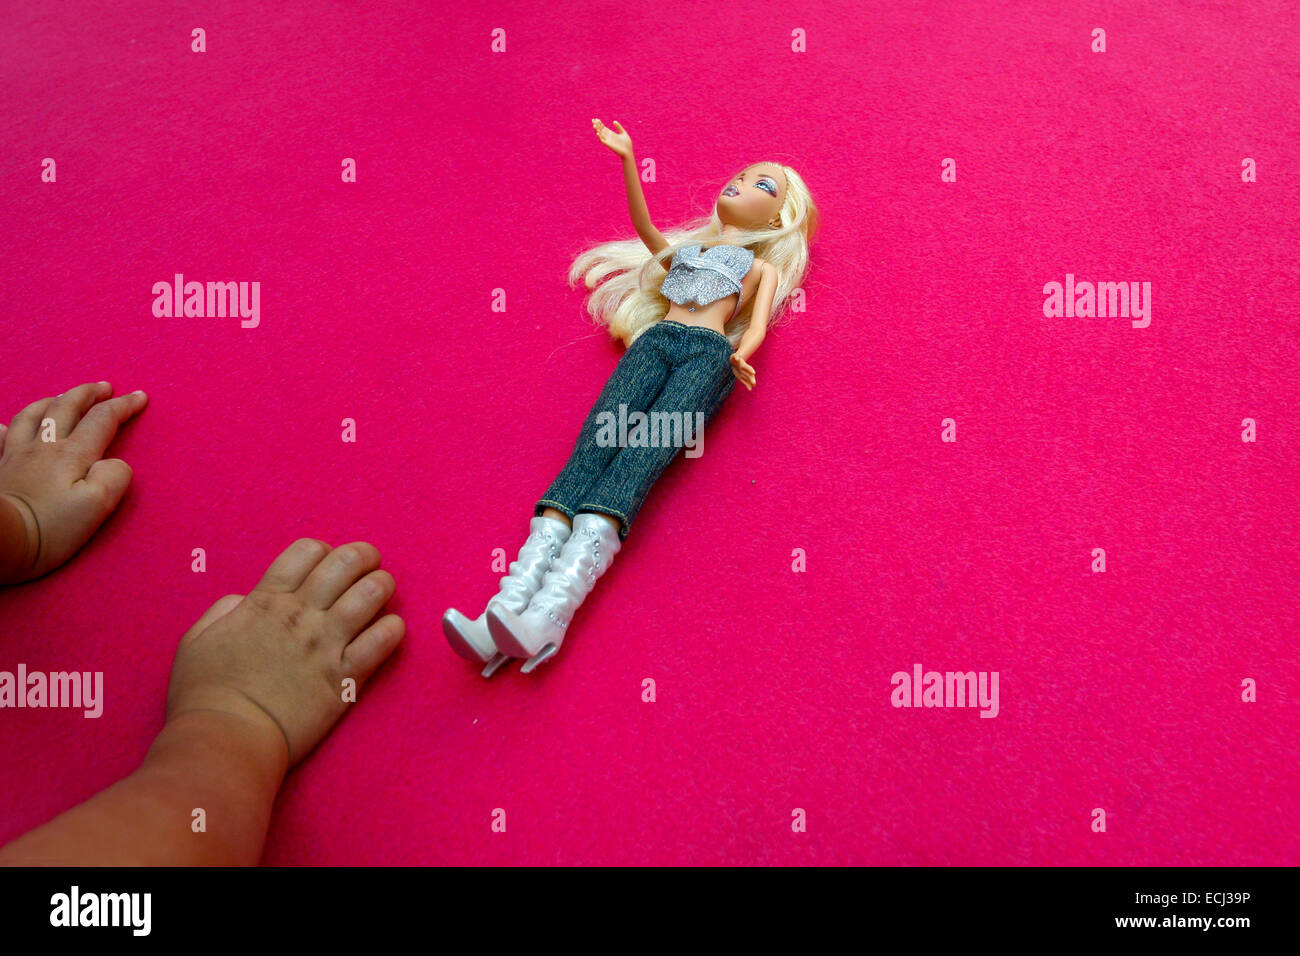 Barbie doll and the child's hands - Stock Image